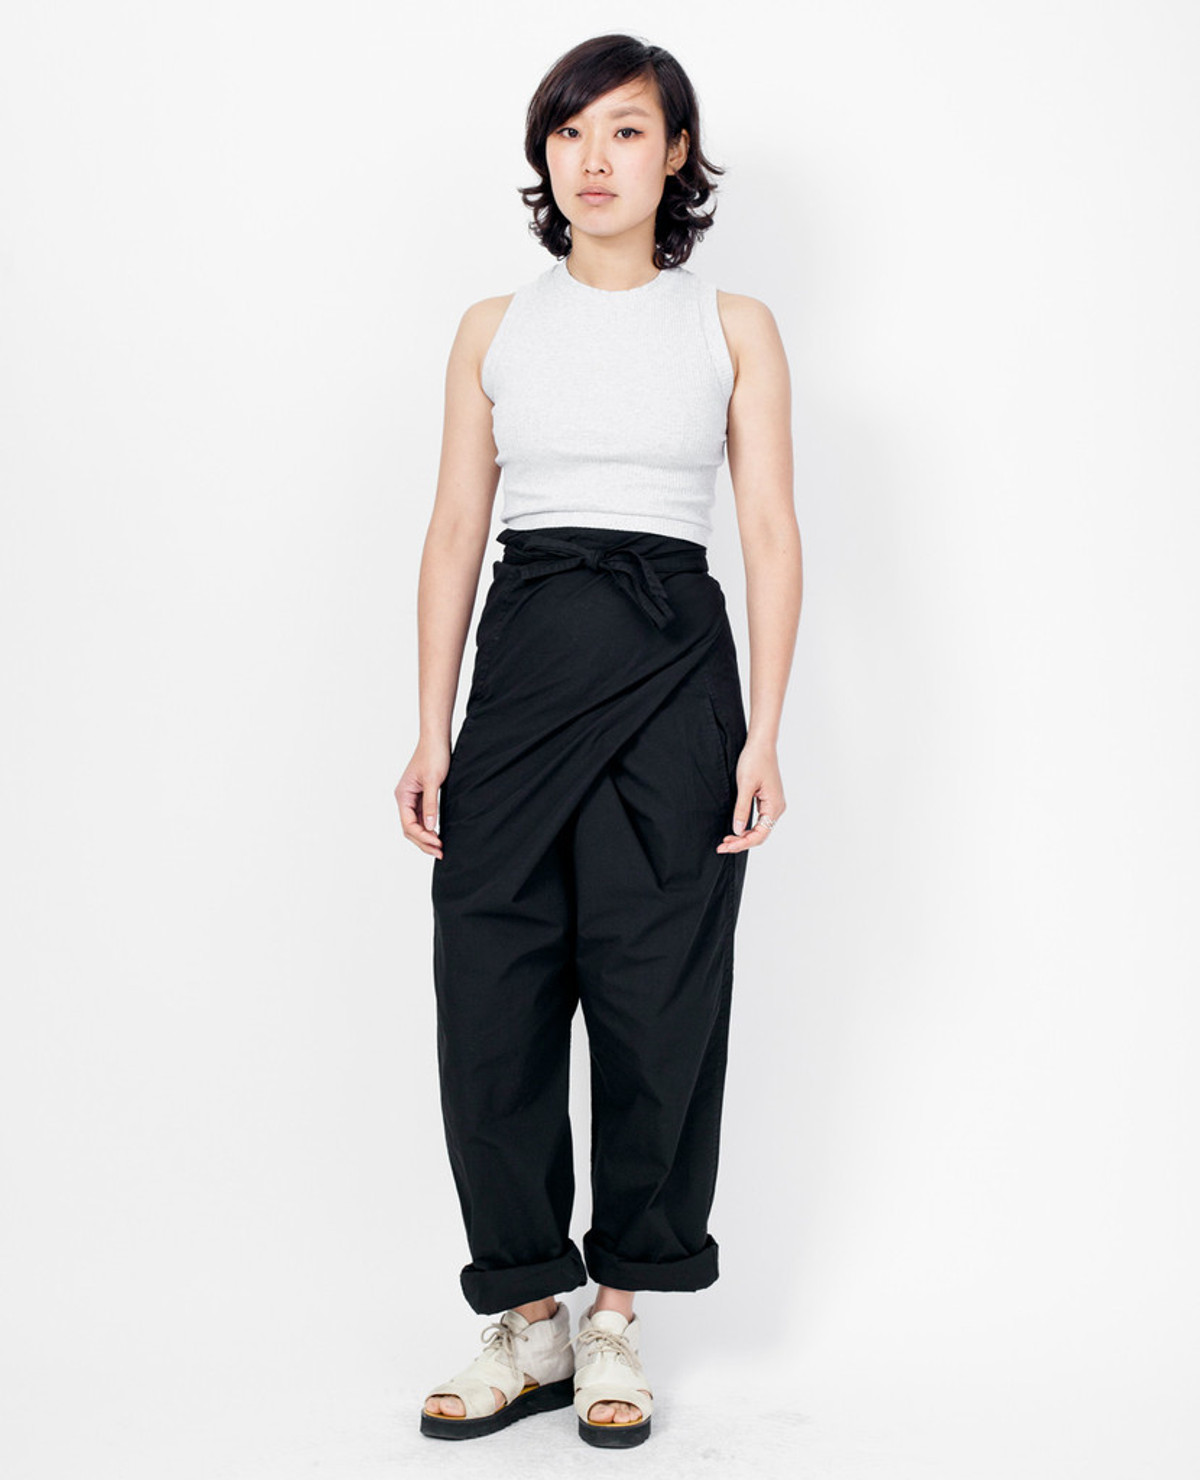 Cosmic Wonder Basic Pants - Black